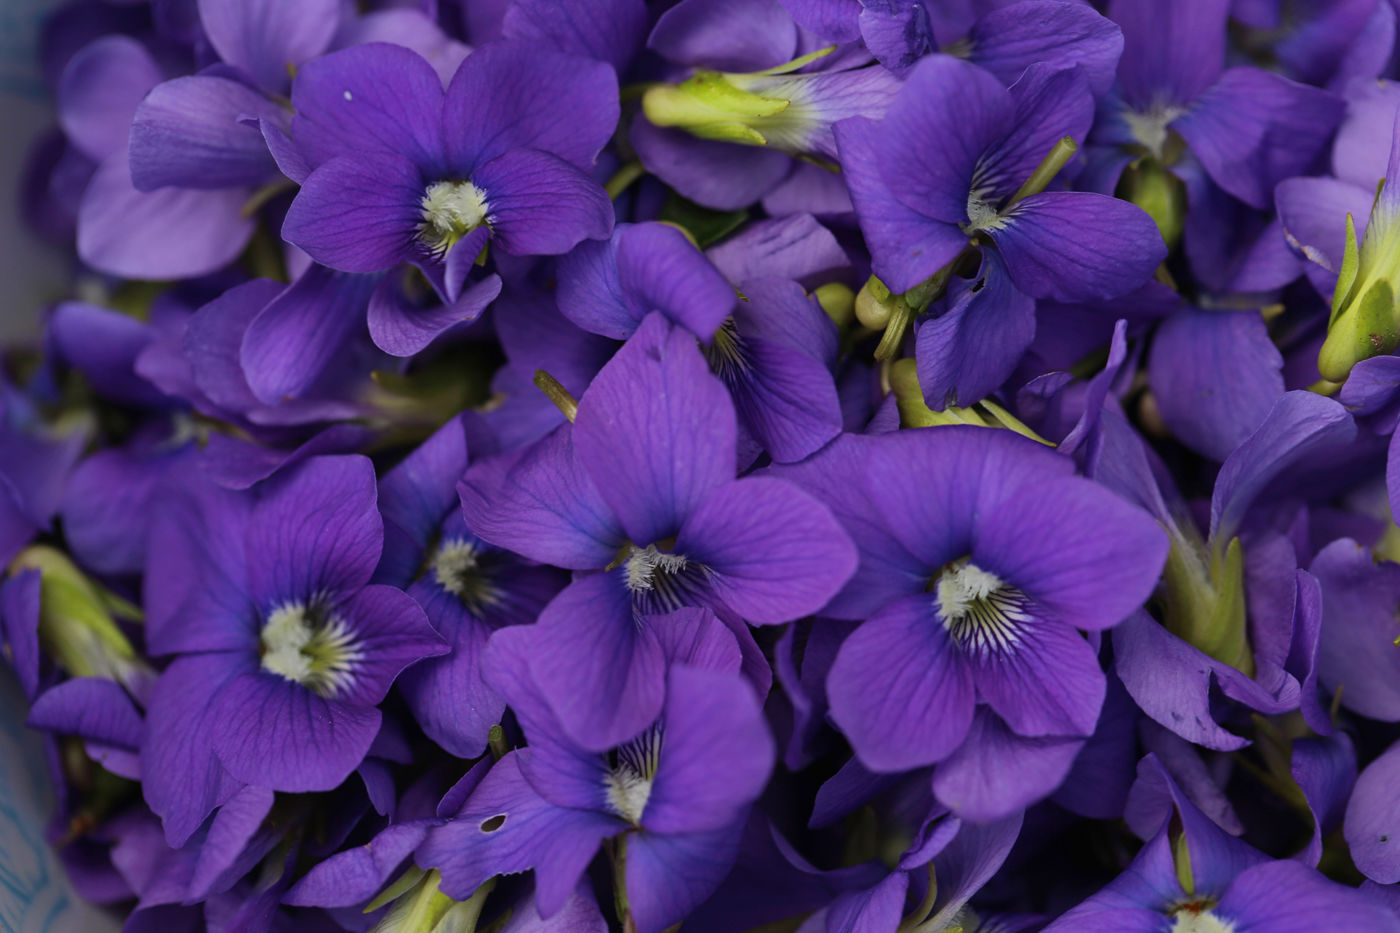 Violets Edible And Medicinal Uses Chestnut School Of Herbal Medicine